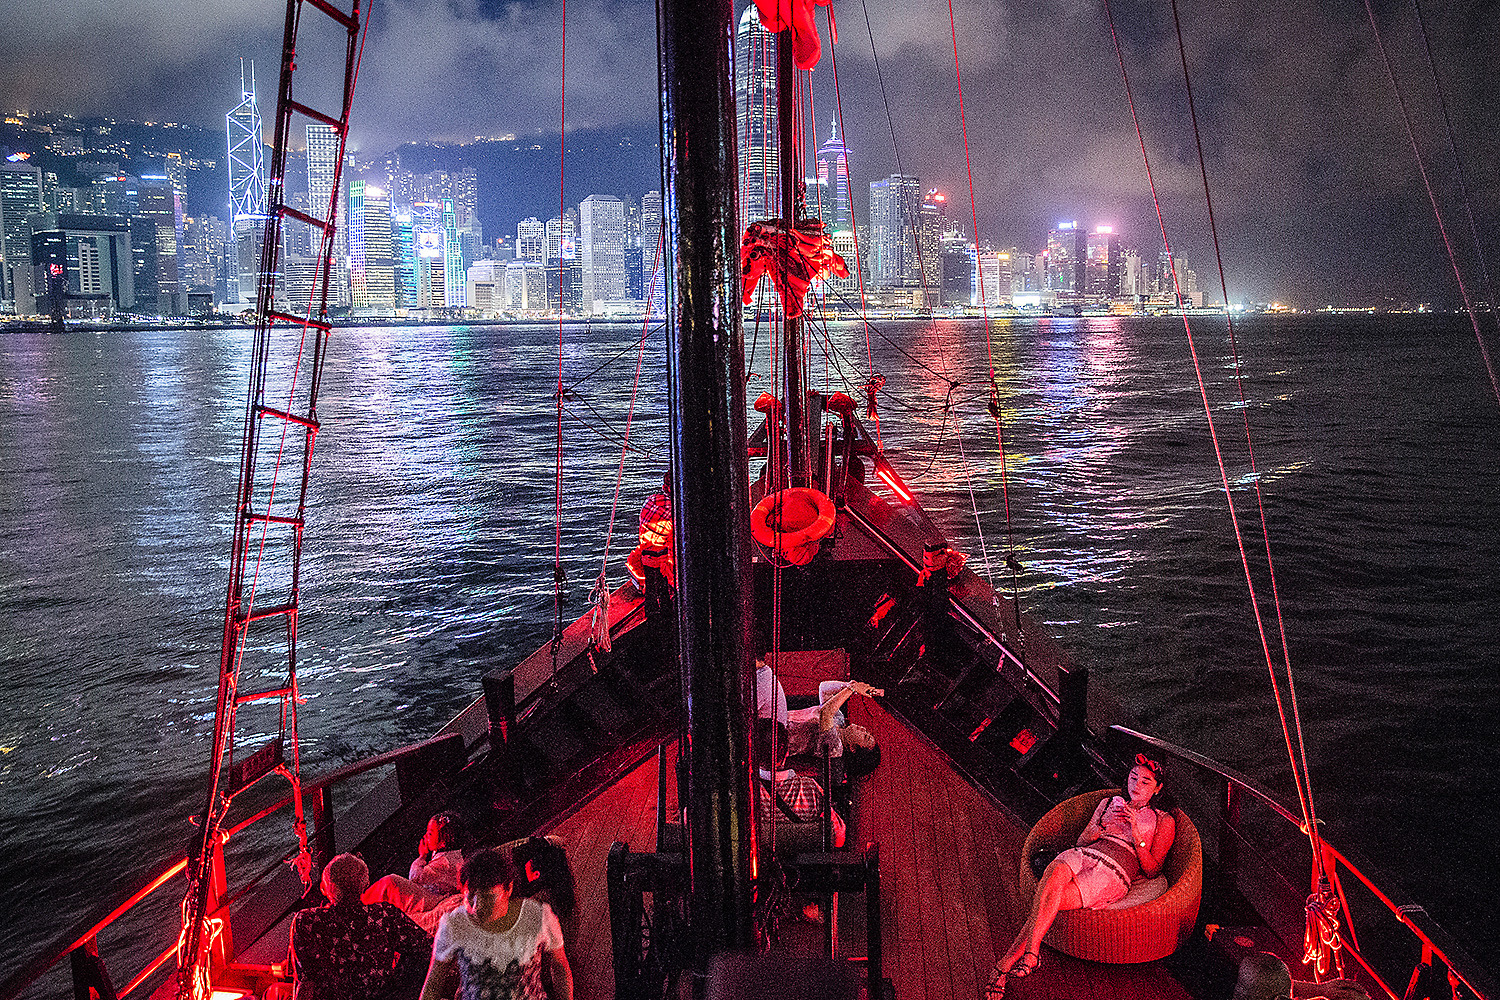 A group of visitors on a Chinese junk boat tour Victoria Harbour in Hong Kong. Photo by Laurence Tan @findlaurence